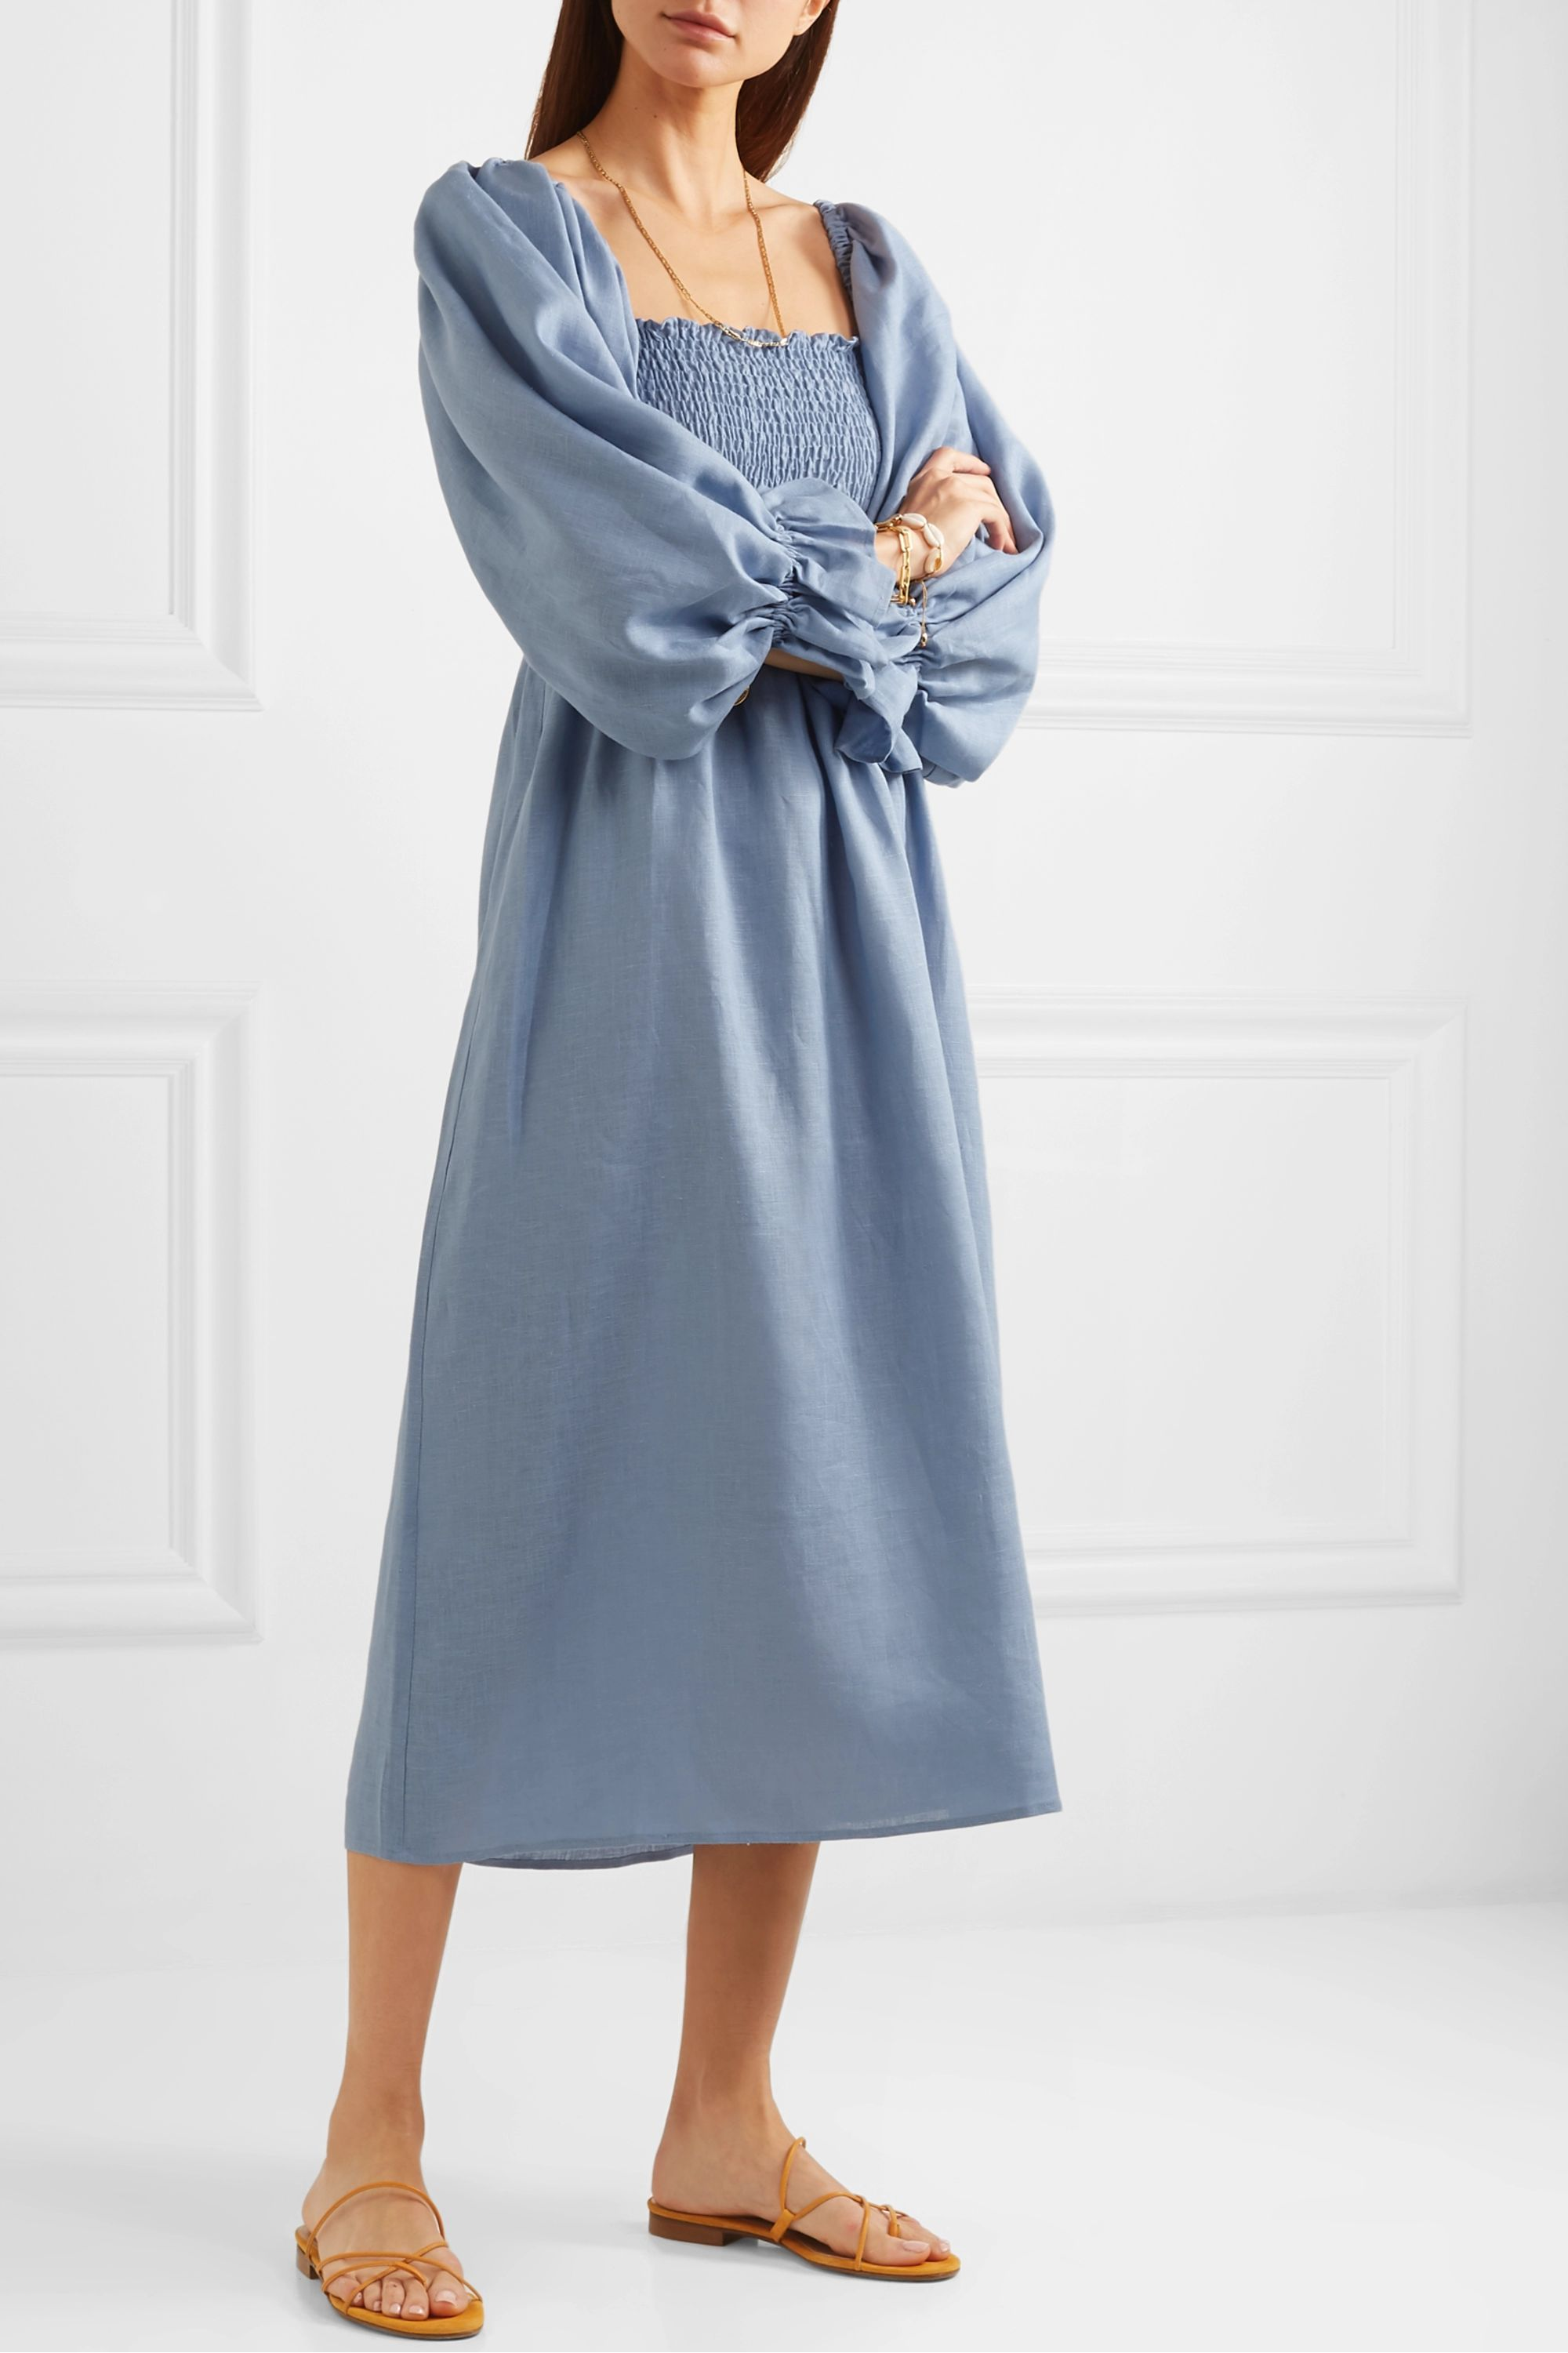 Sleeper Atlanta off-the-shoulder shirred linen midi dress